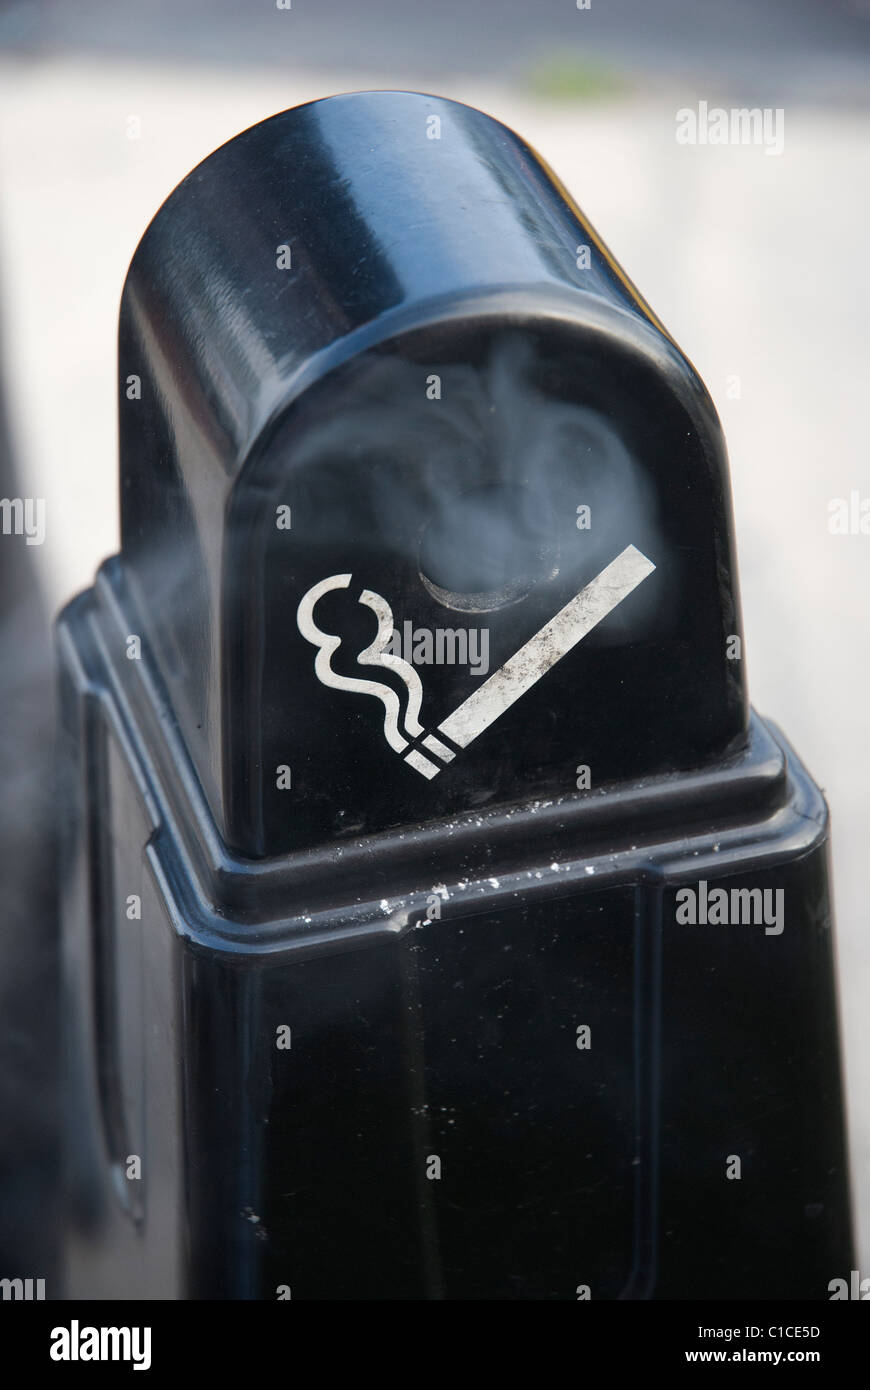 smoking cigarette receptacle at entrance to store - Stock Image